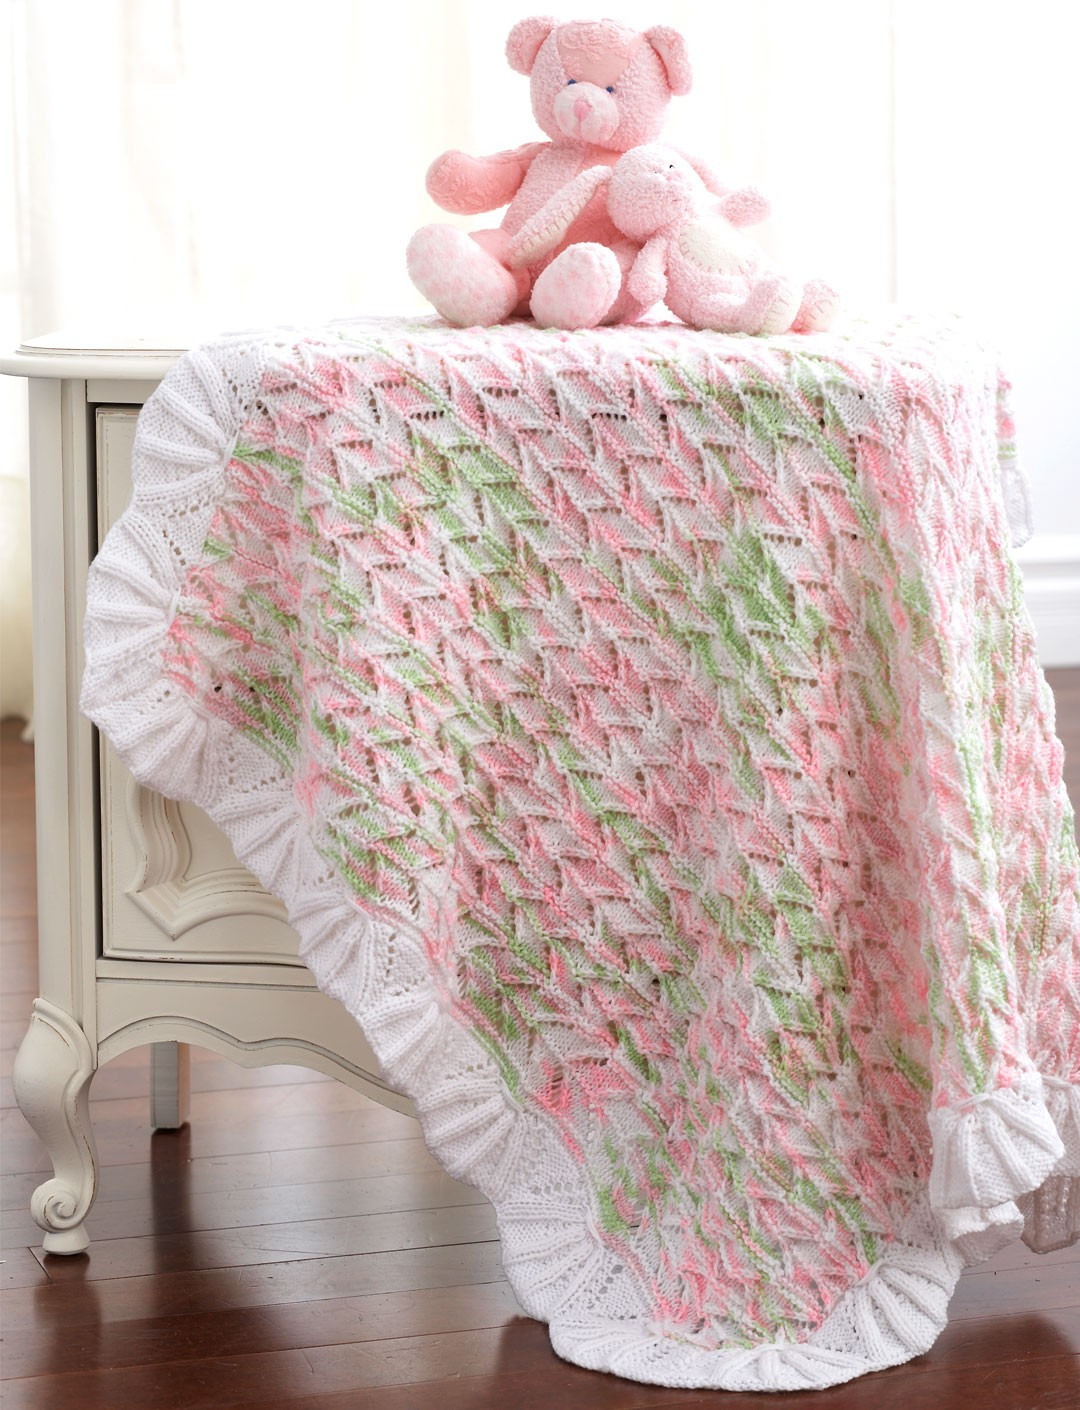 Baby Afghan Inspirational A some Baby Blanket Knitting Patterns Of Attractive 50 Pics Baby Afghan